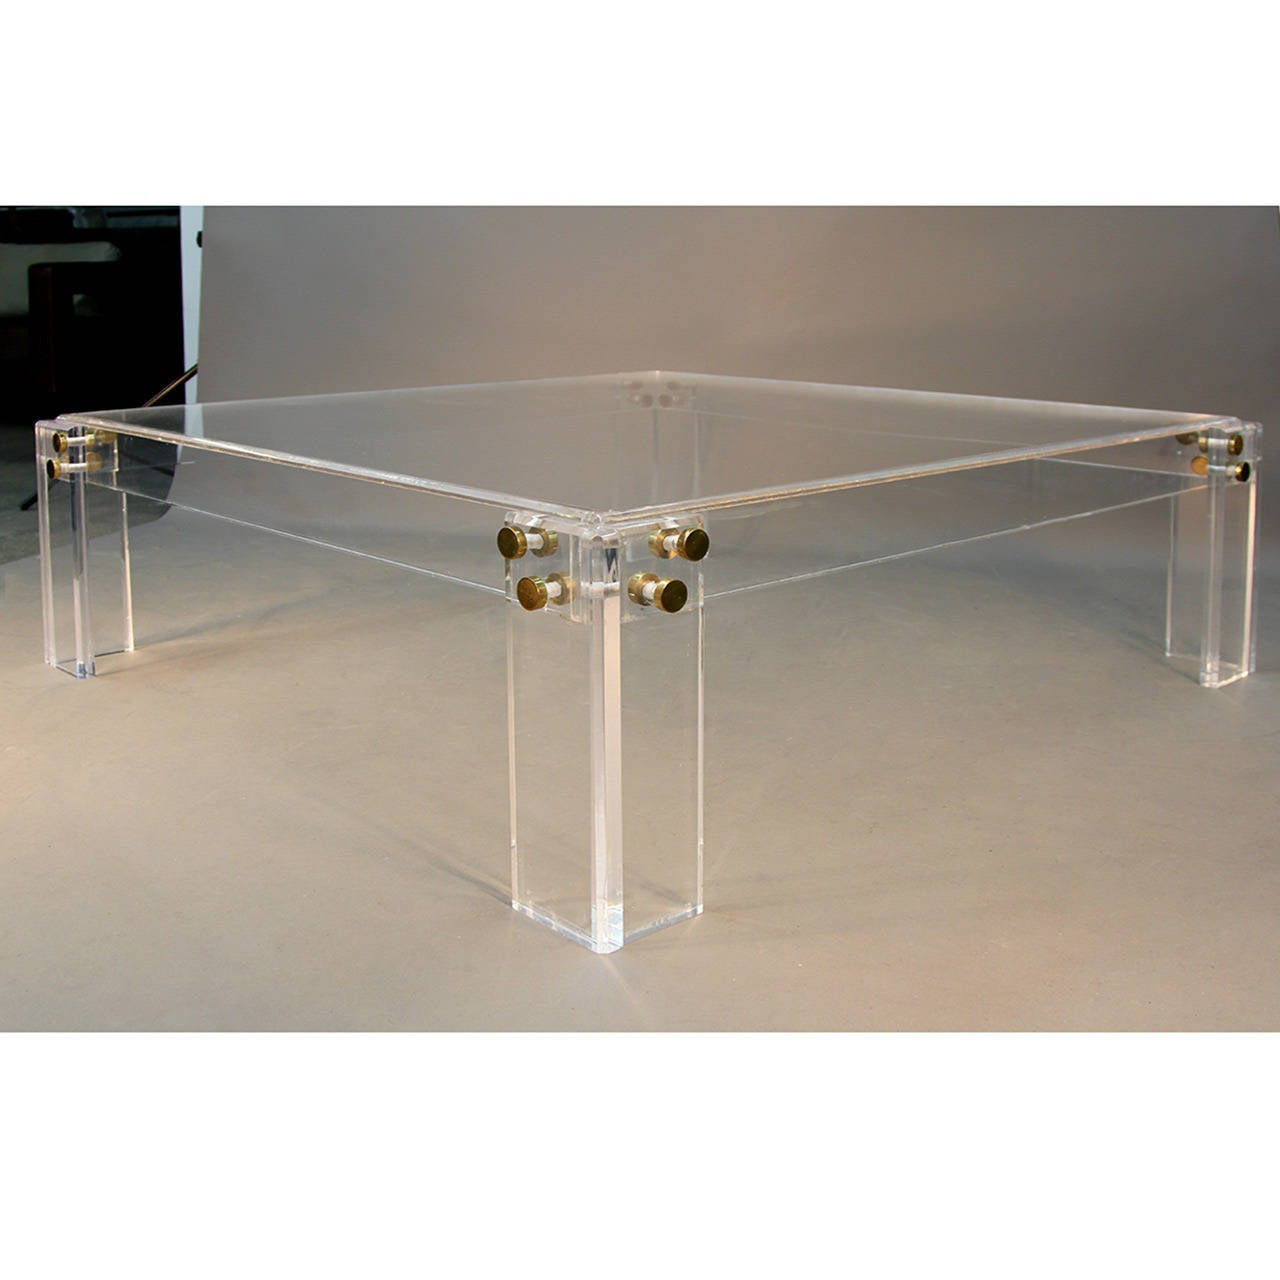 Monumental All Lucite With Brass Hardware Coffee Table At 1stdibs